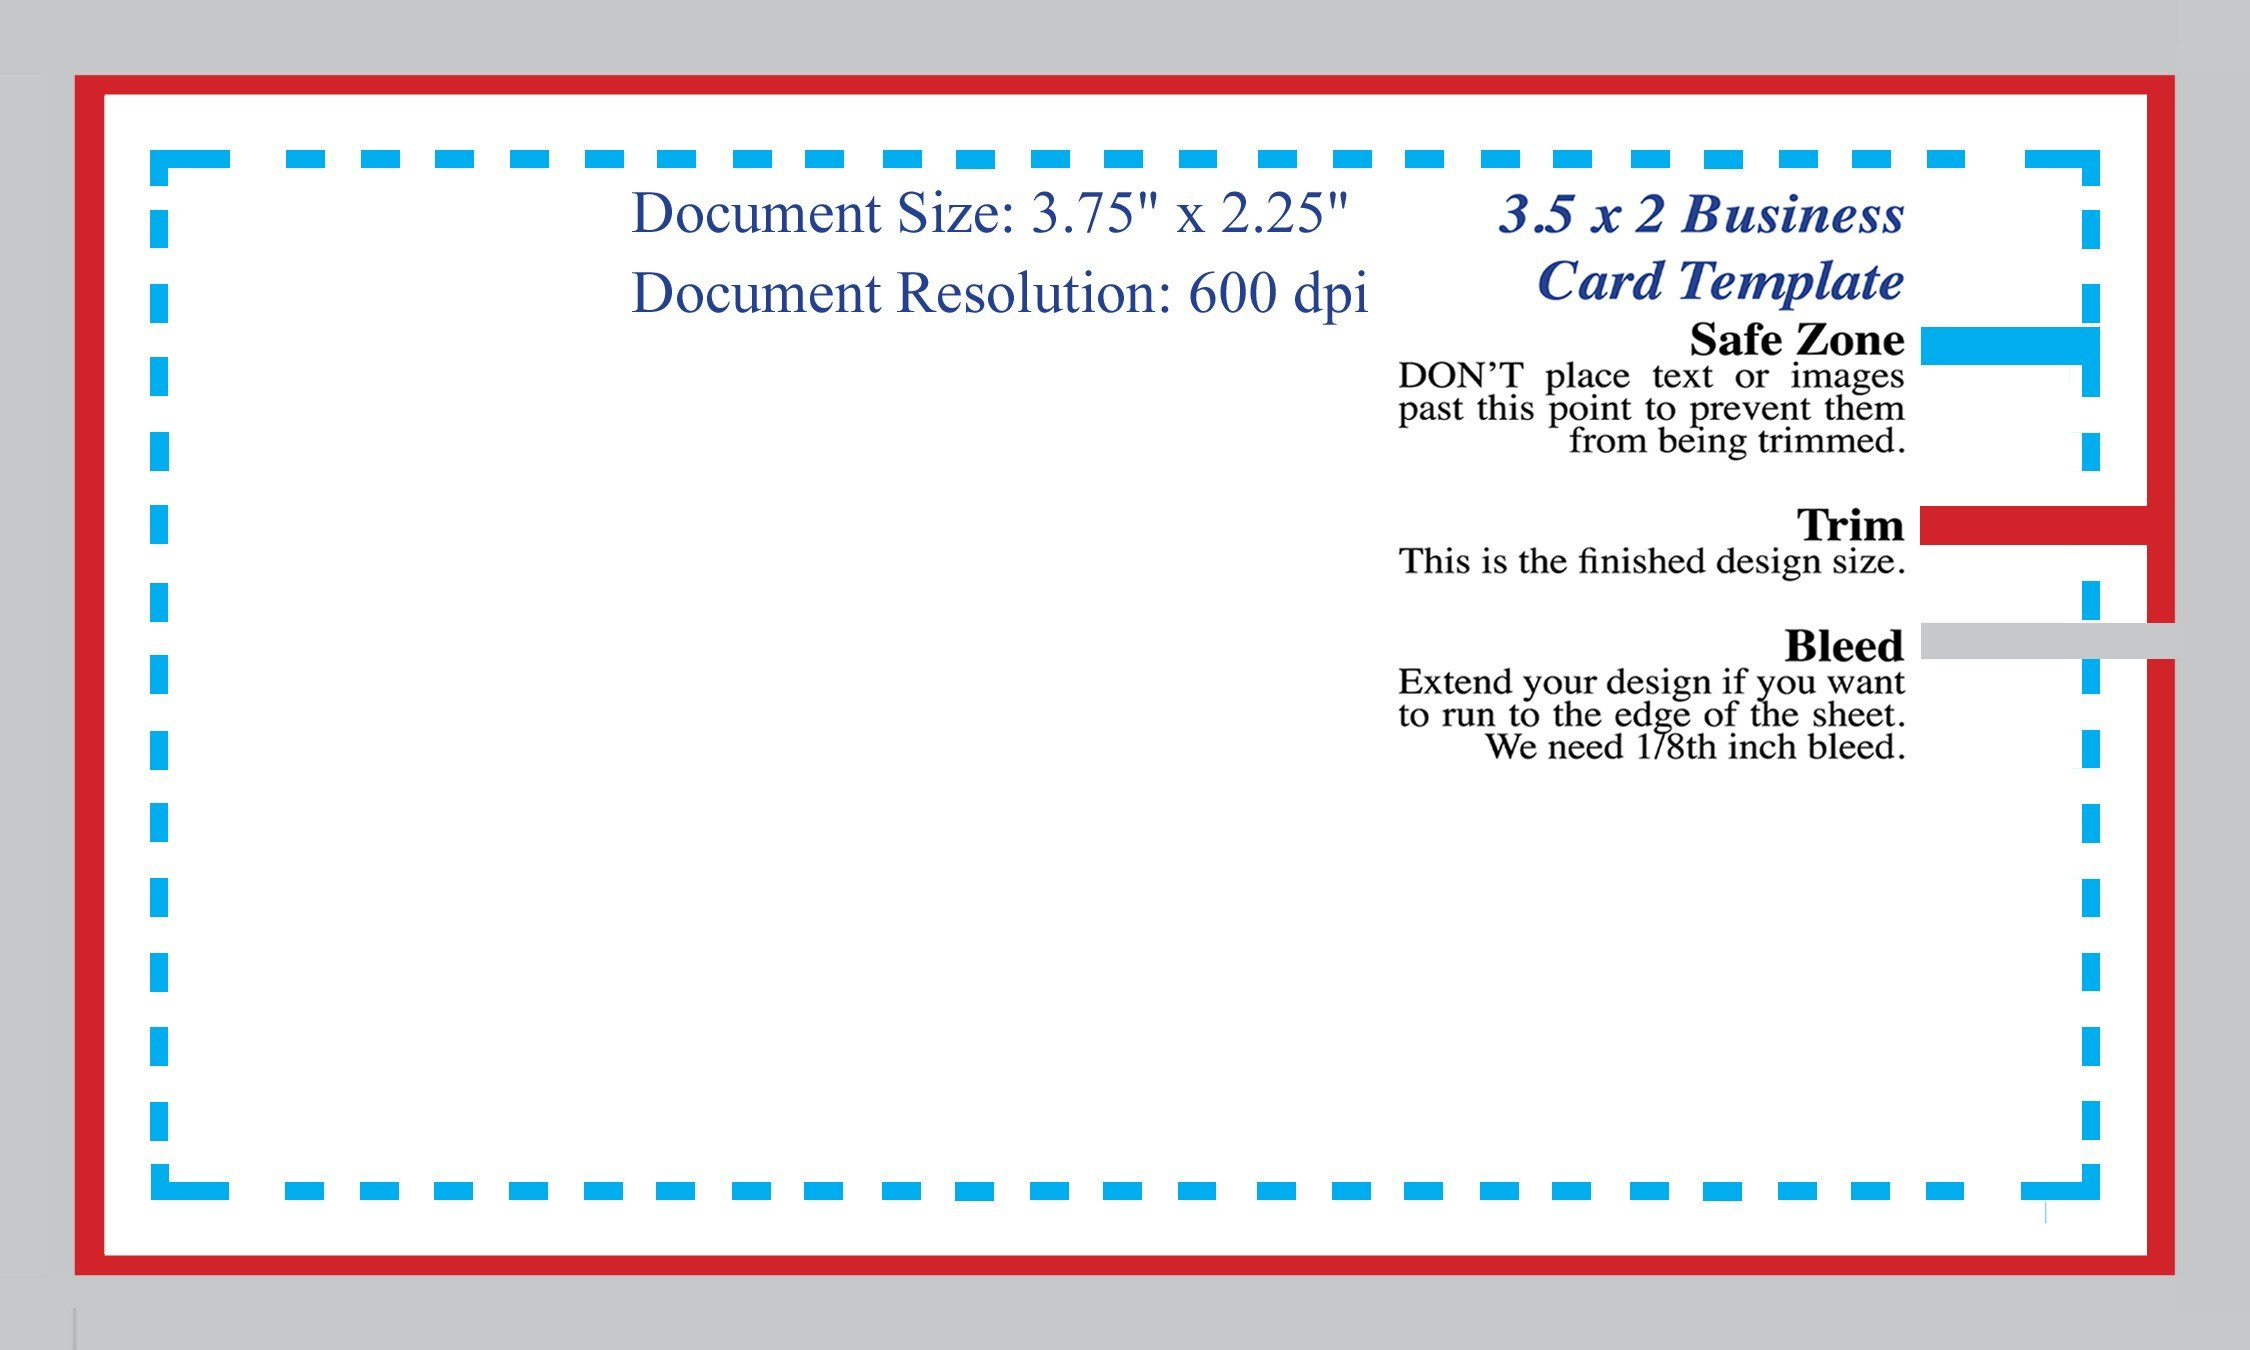 Photoshop Business Card Template Cards Templates Within Photoshop Business Card Template With Bleed